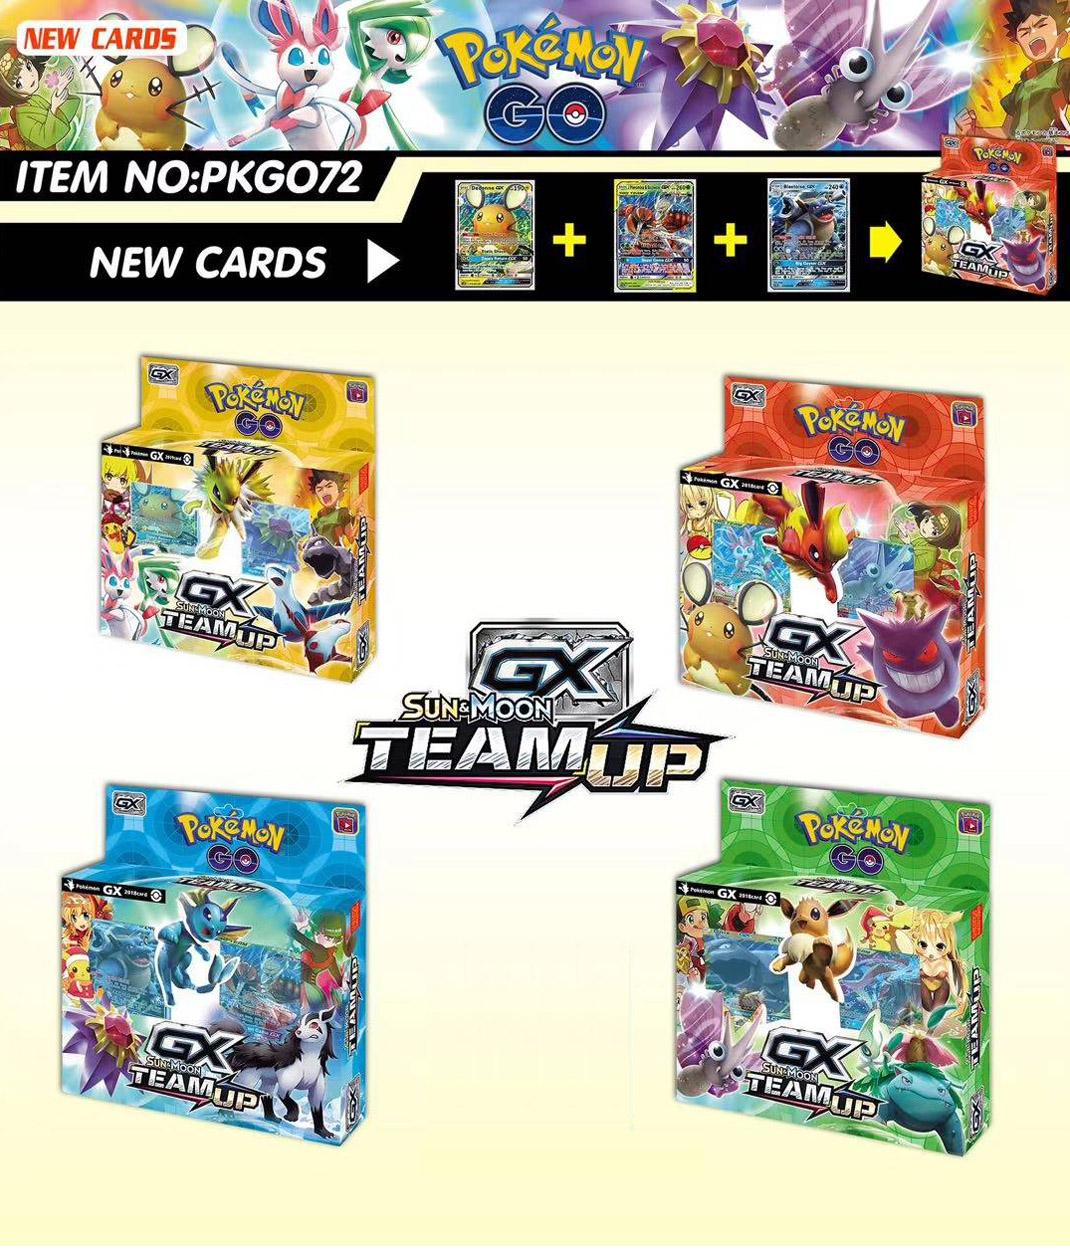 56 Cards Per Box New POKEMON Card English Version Pokemon Sm11 Ptcg Battle Collection Card Box Kids Toy Gift